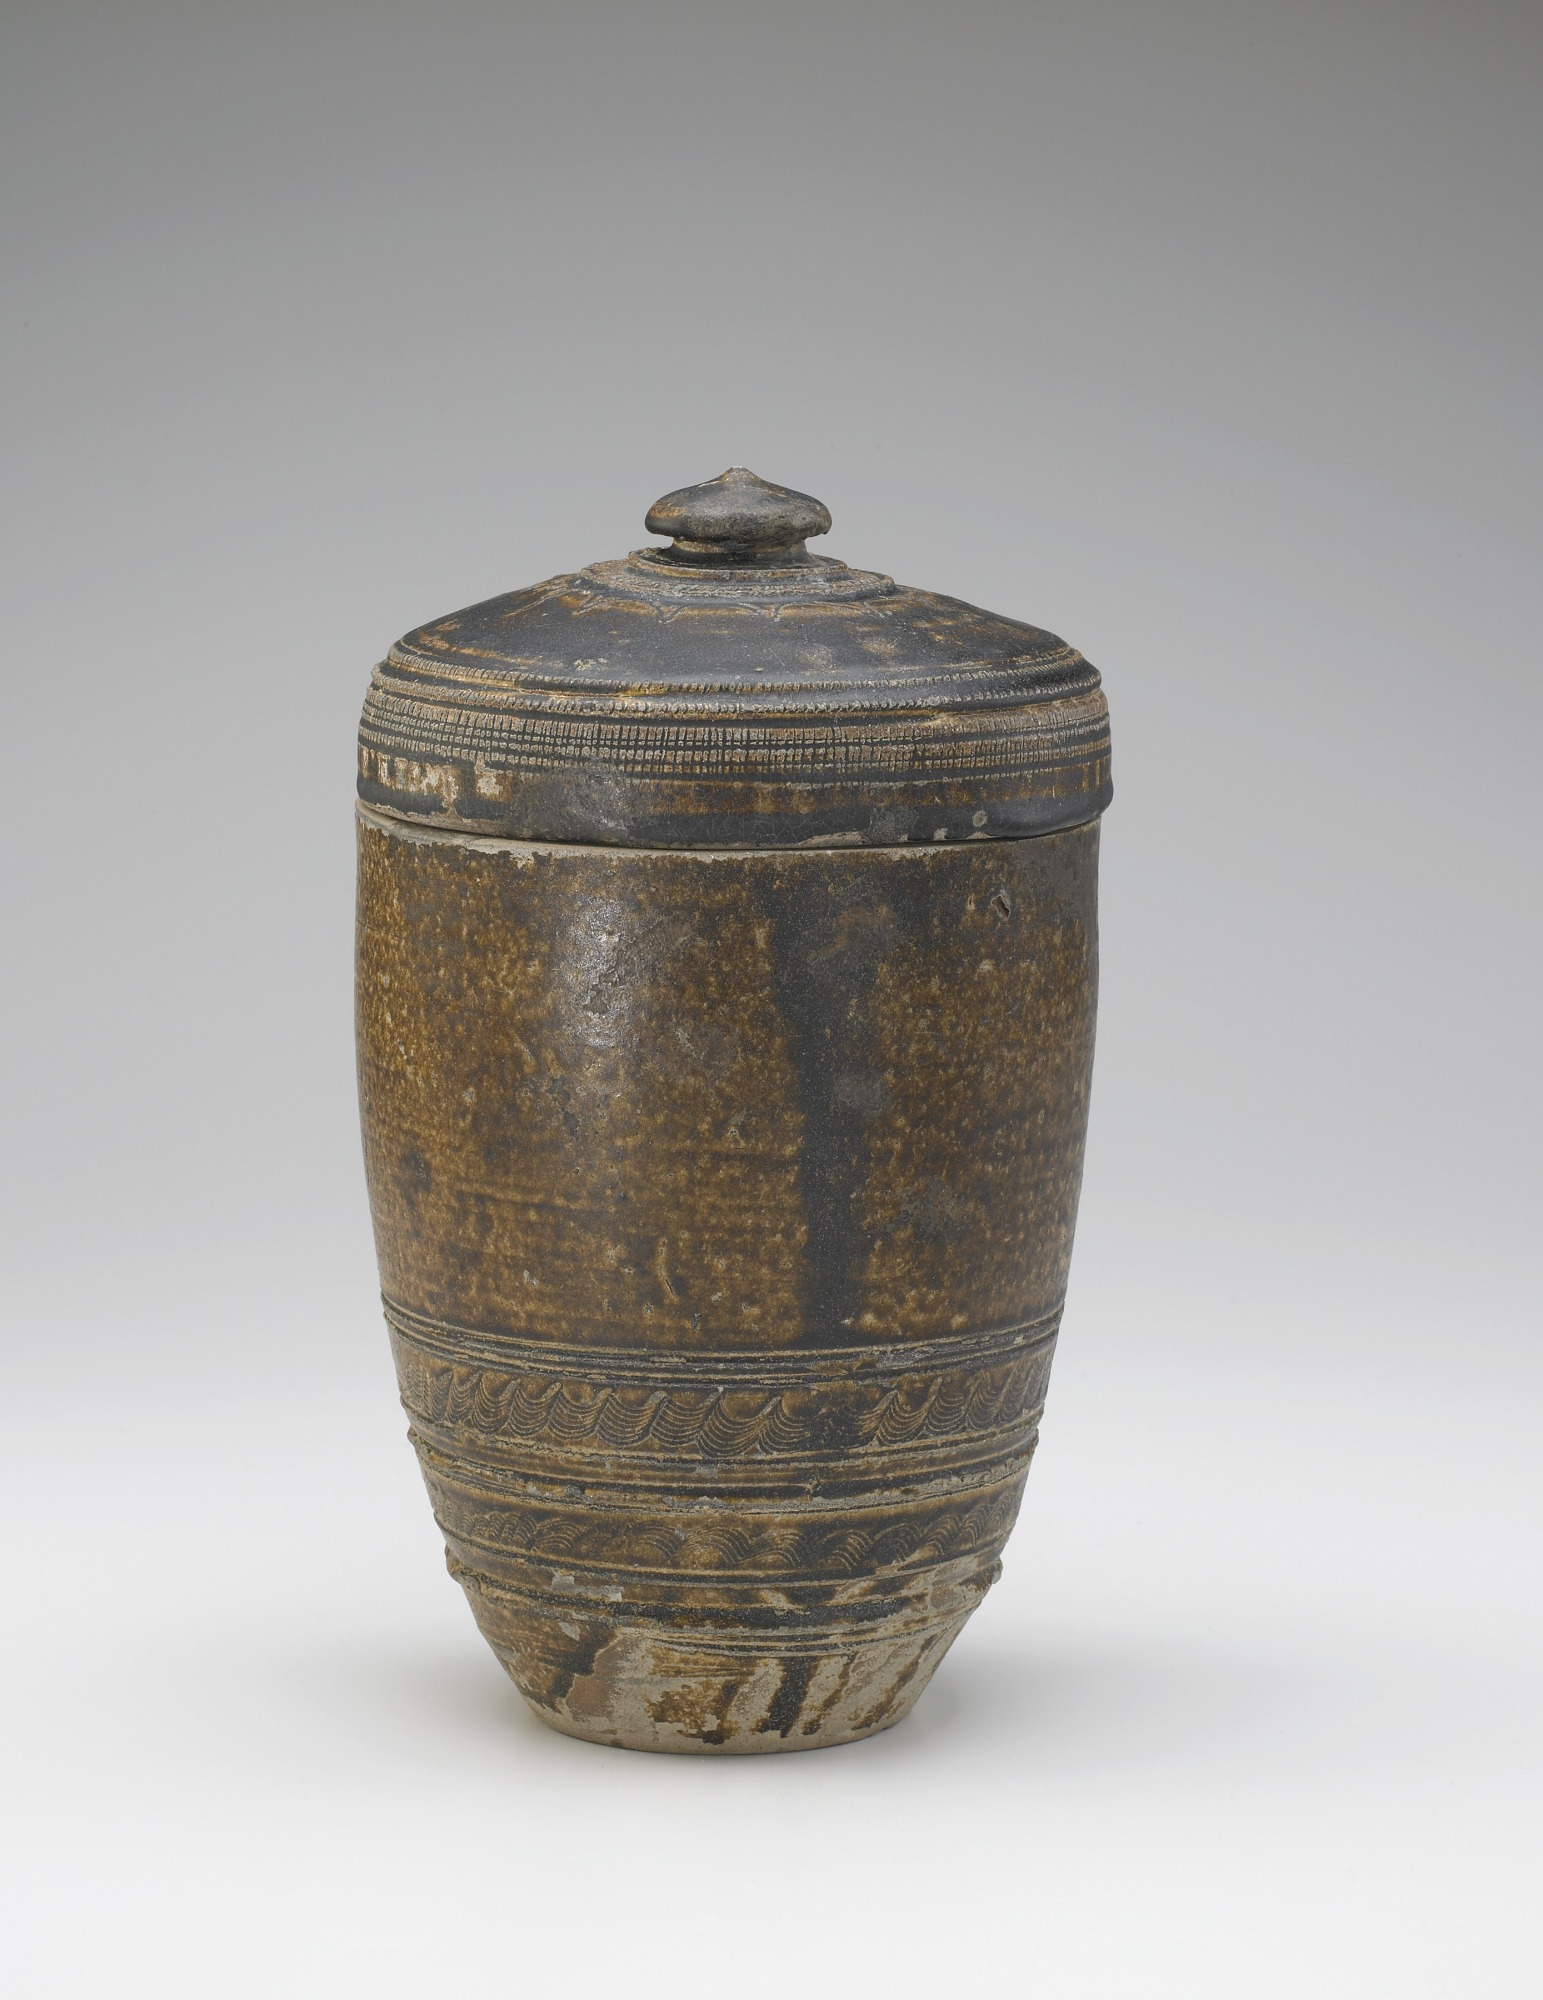 Cylindrical jar with lid